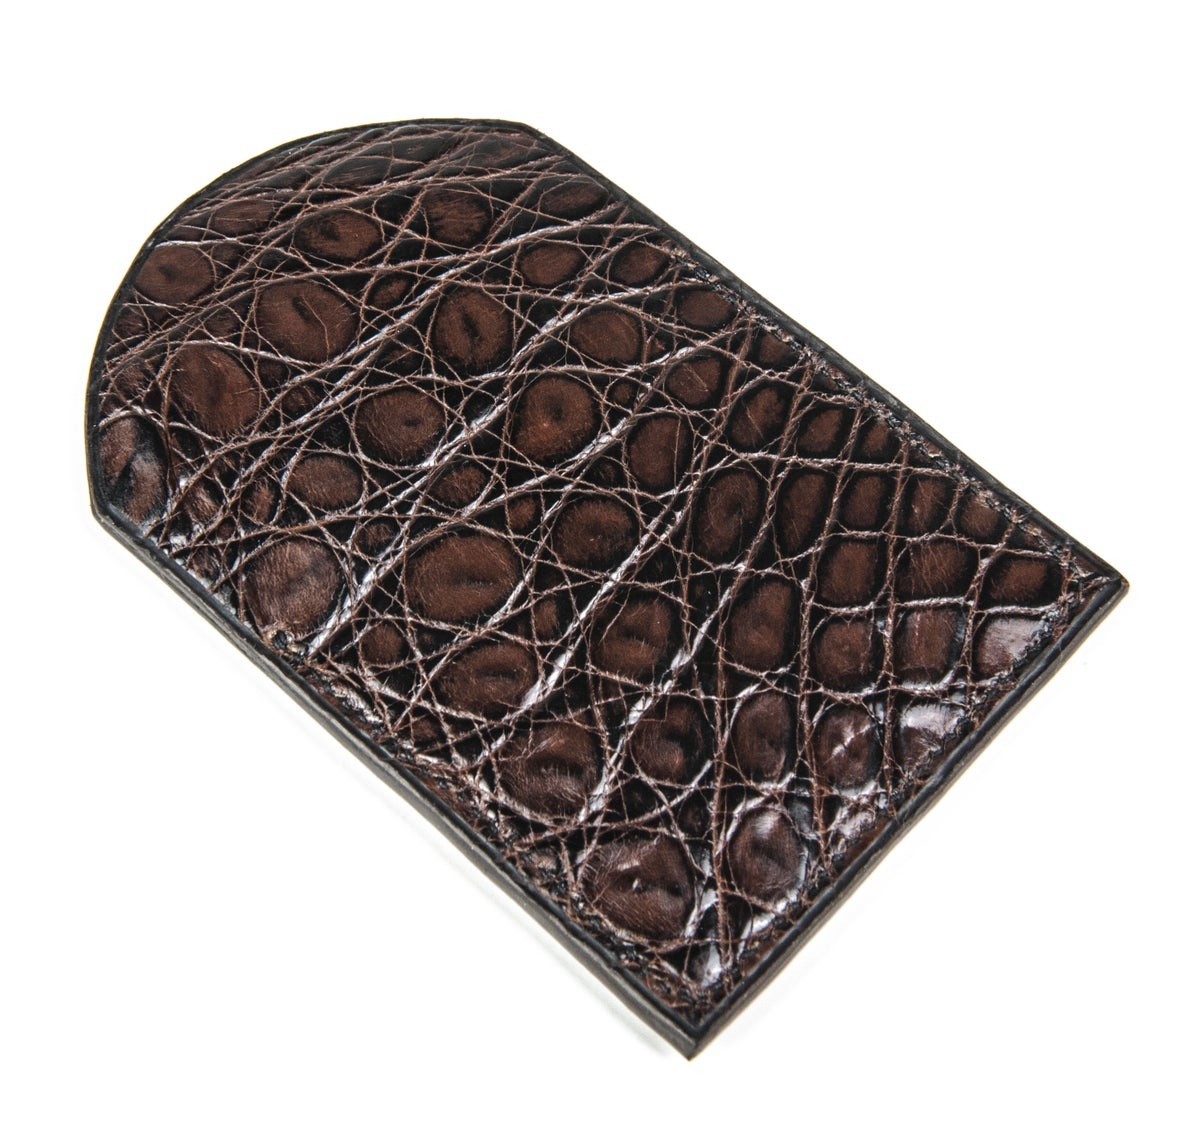 Image of Slim brown crocodile cardholder - Keep All